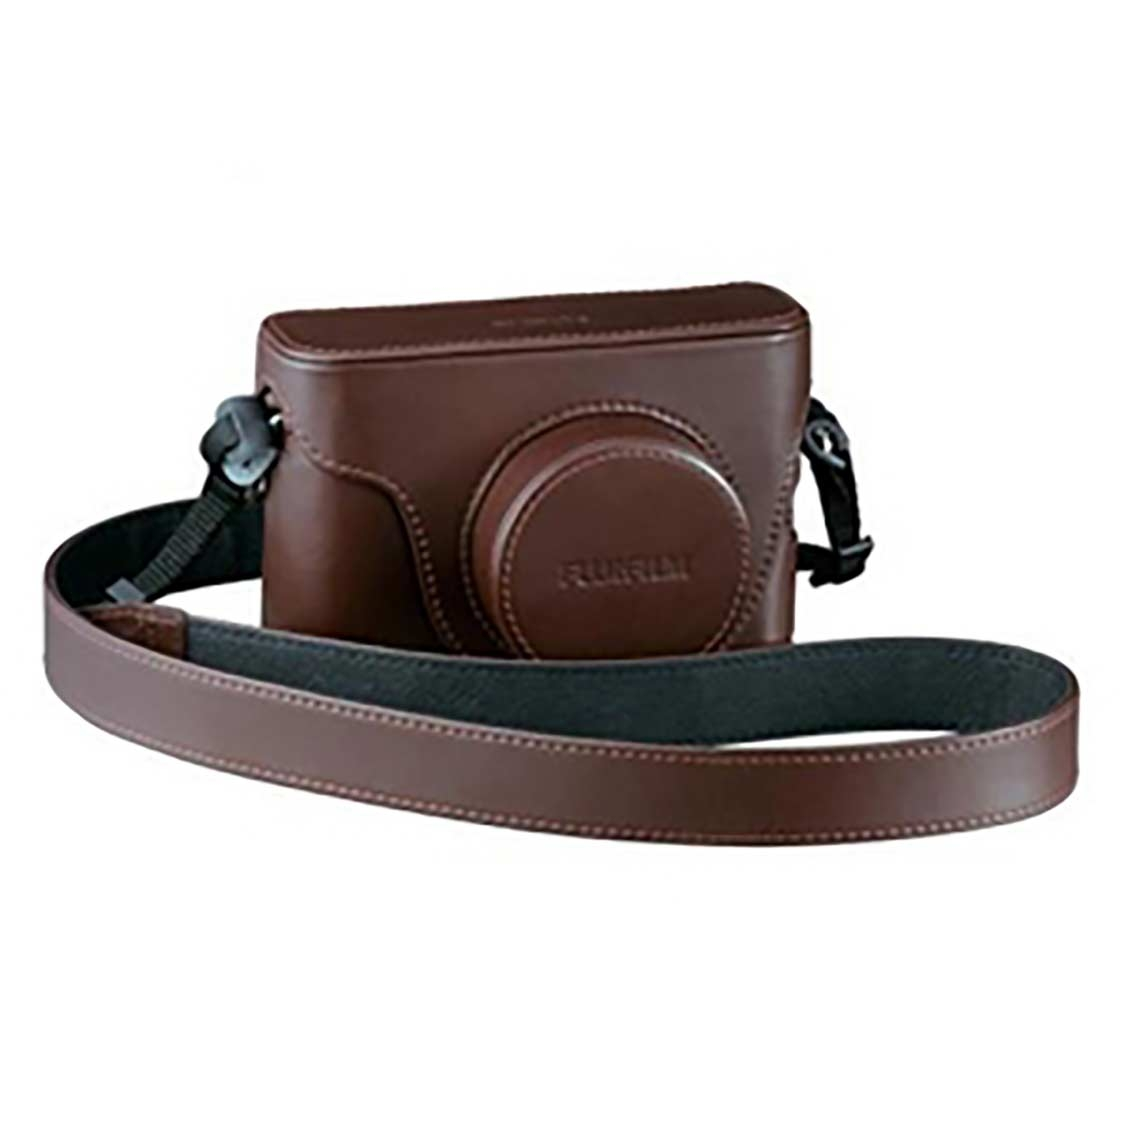 Fuji X100S Leather Case